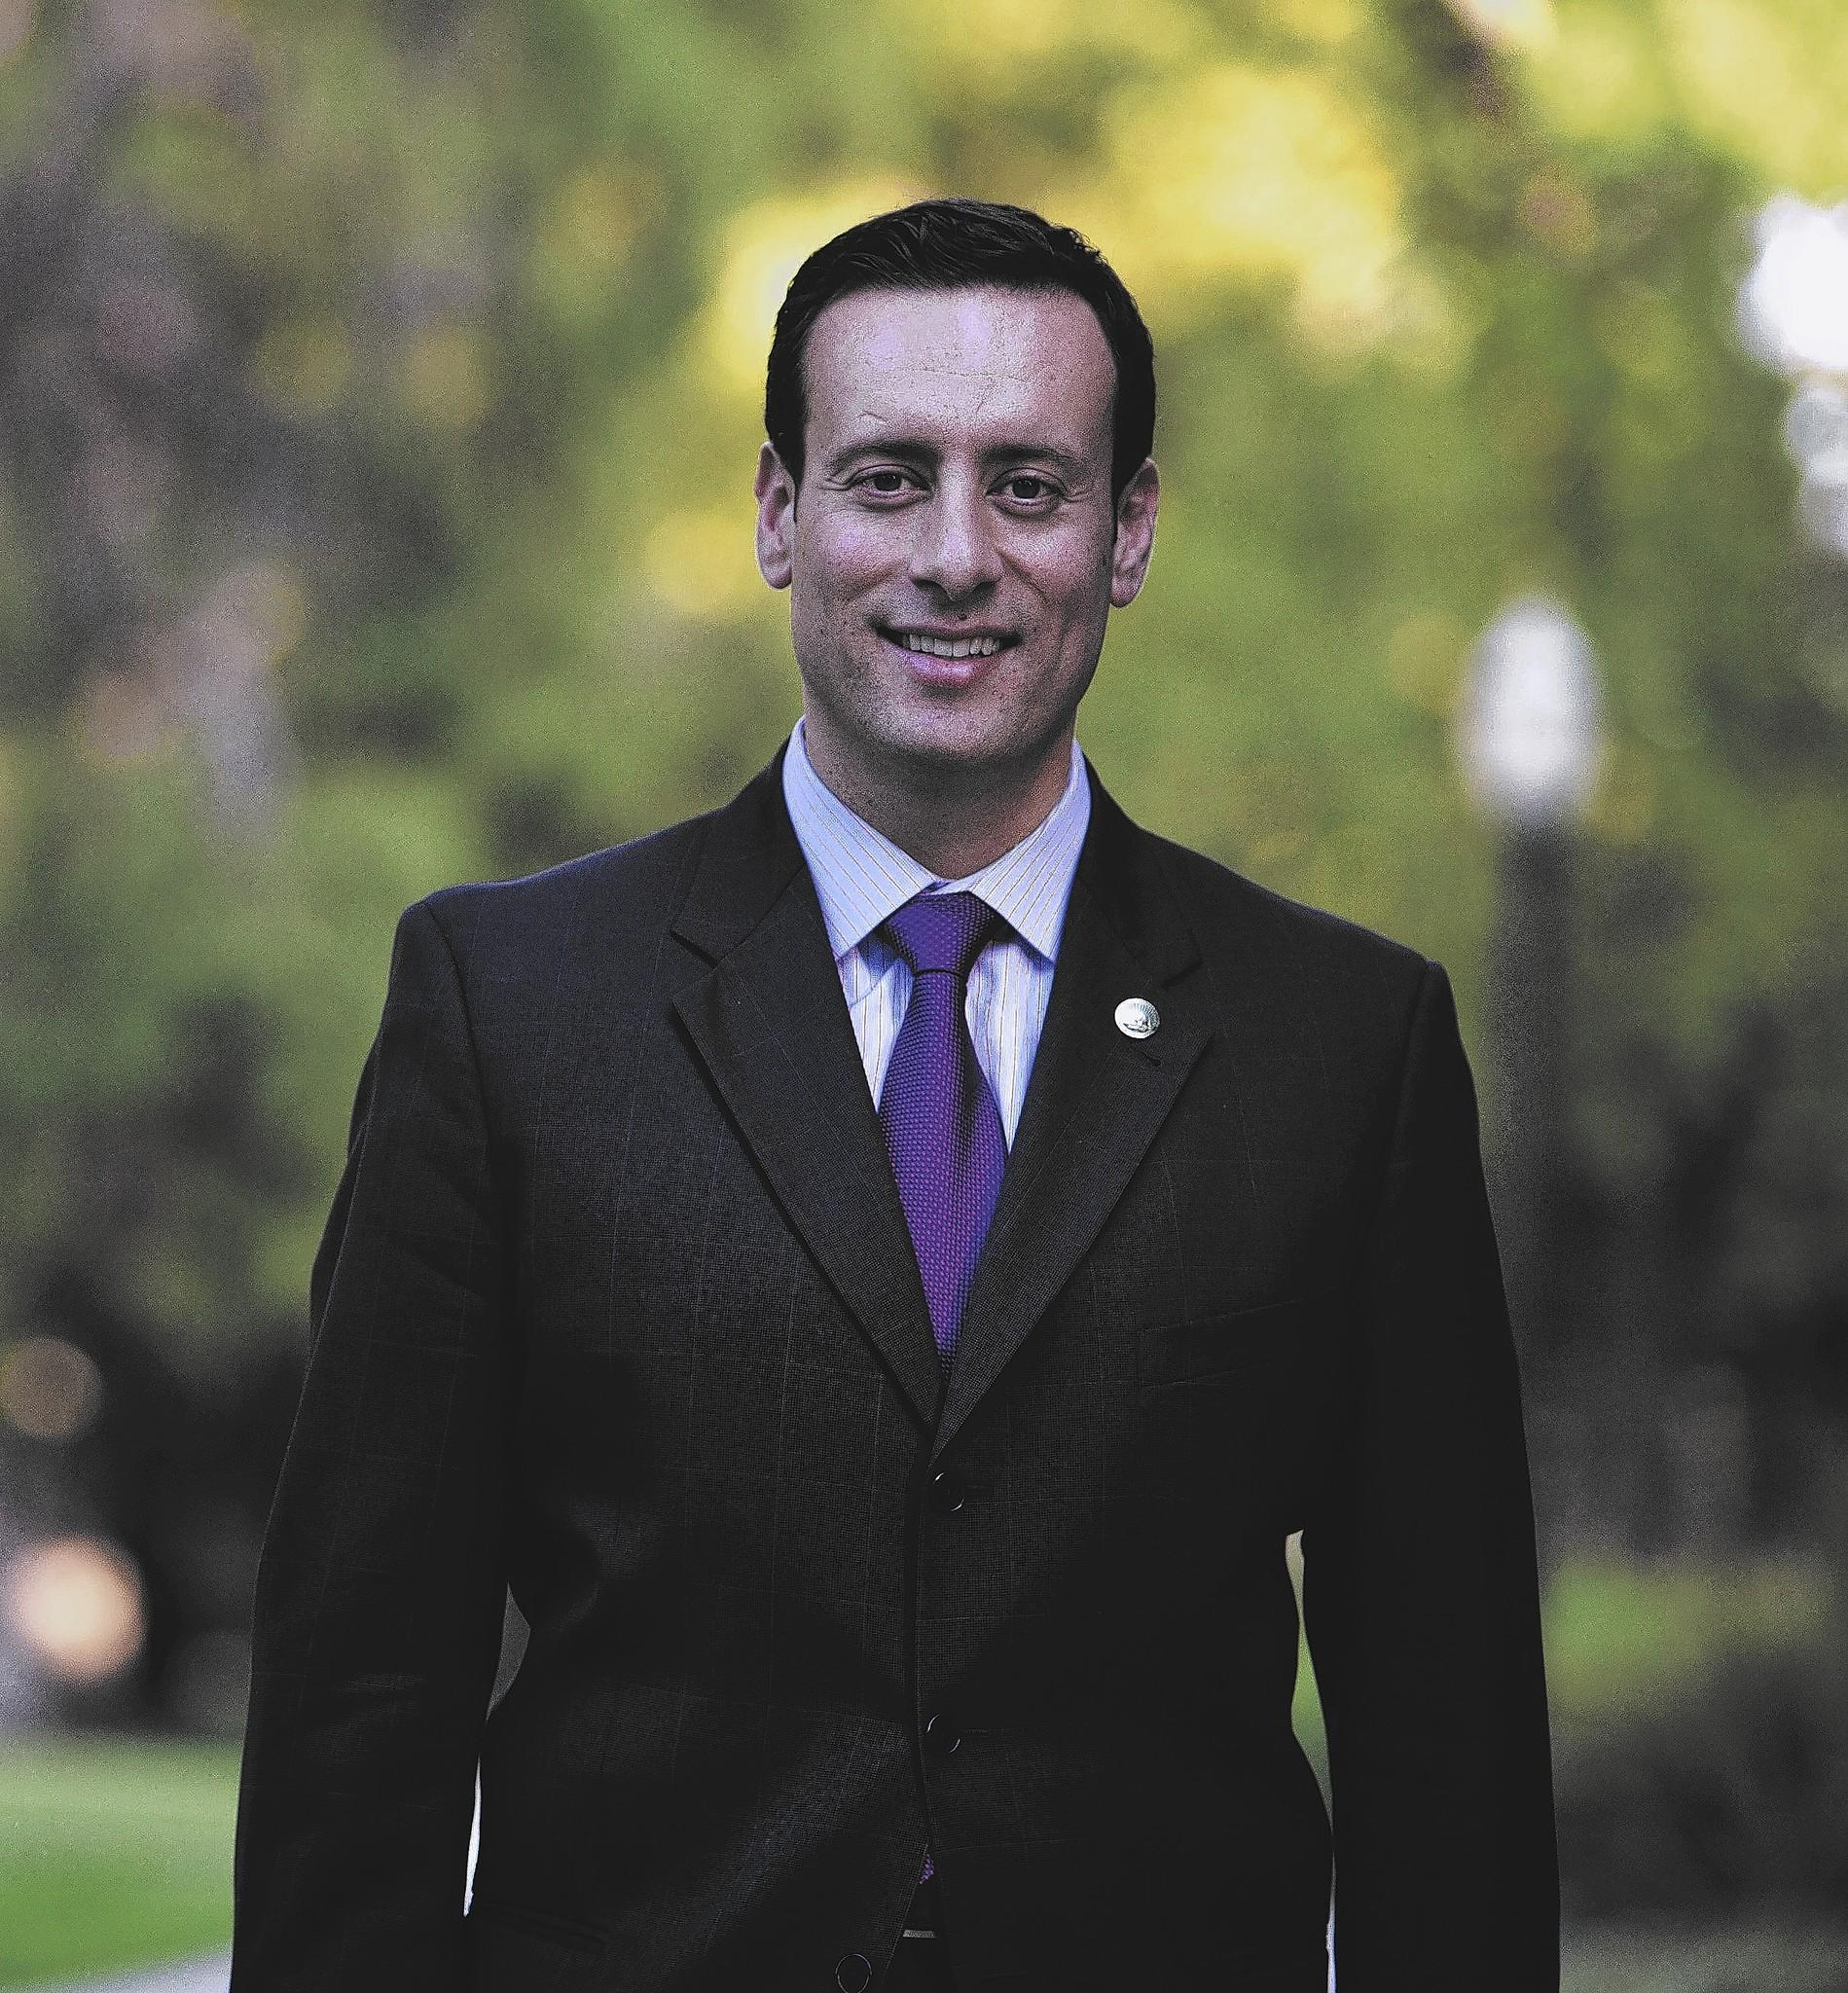 Roger Hernández, assemblyman for the 57th District, at the state Capitol in Sacramento.